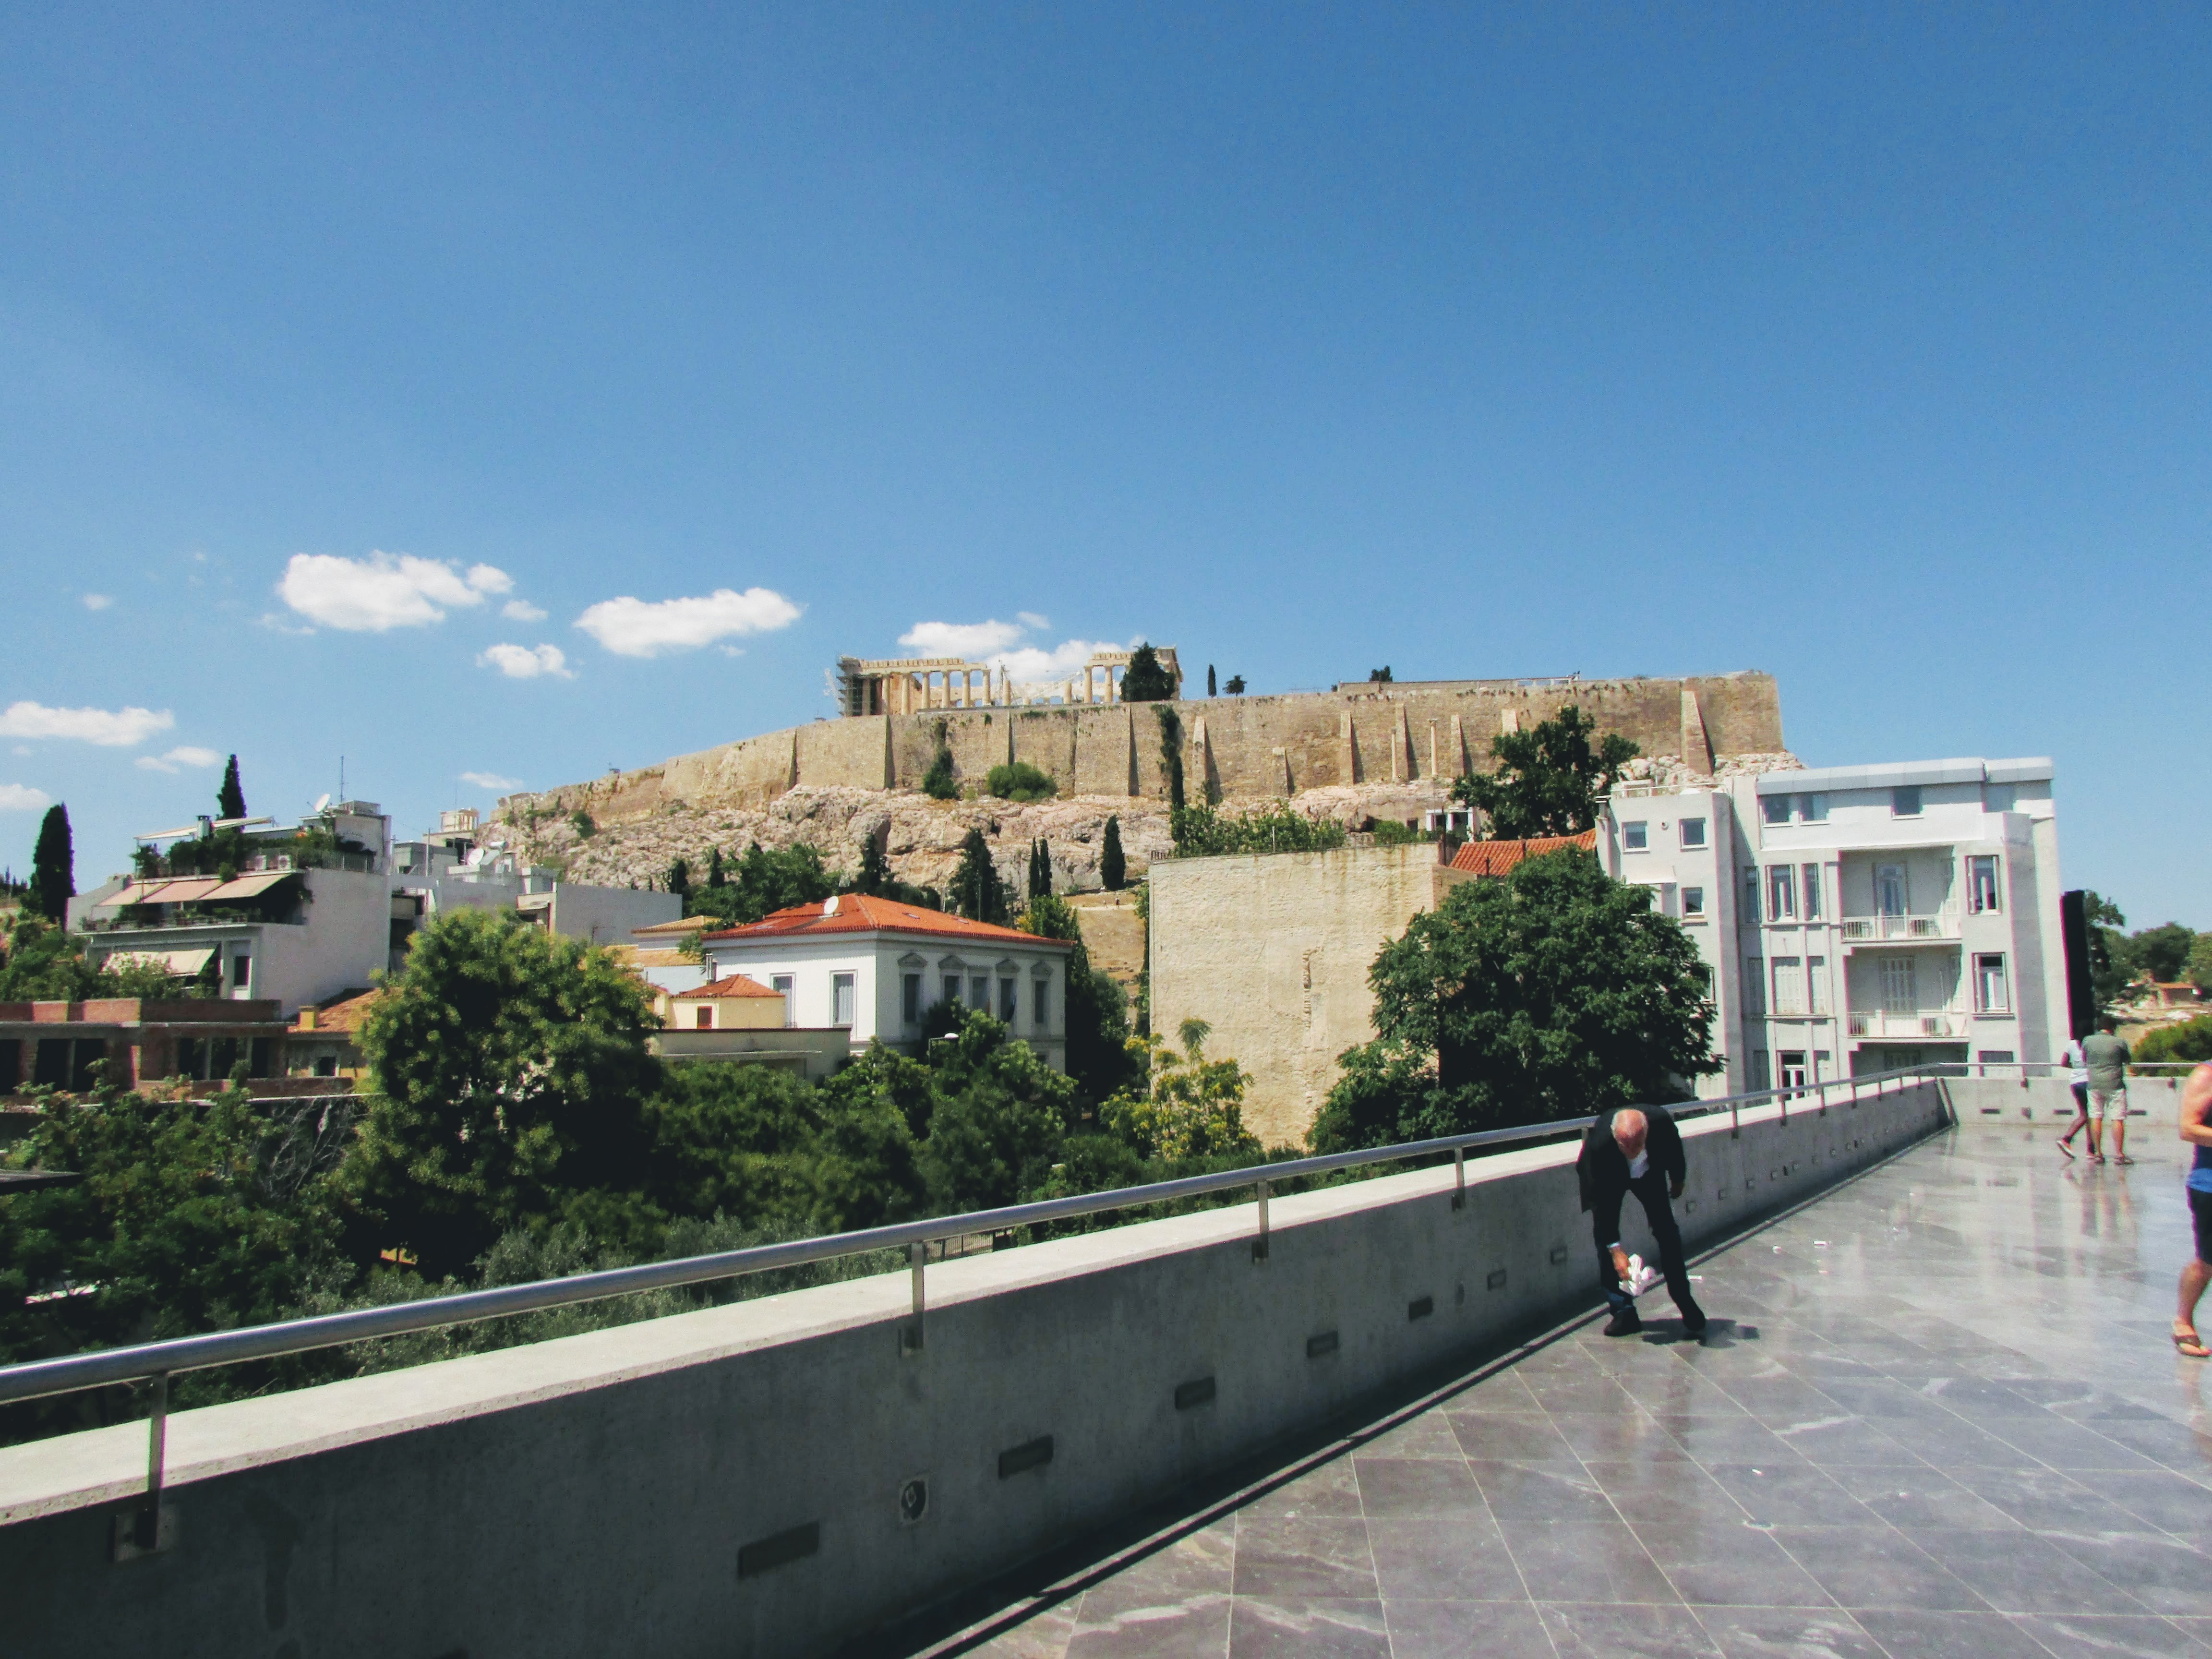 View of the Acropolis hill from the New Acropolis Museum cafe